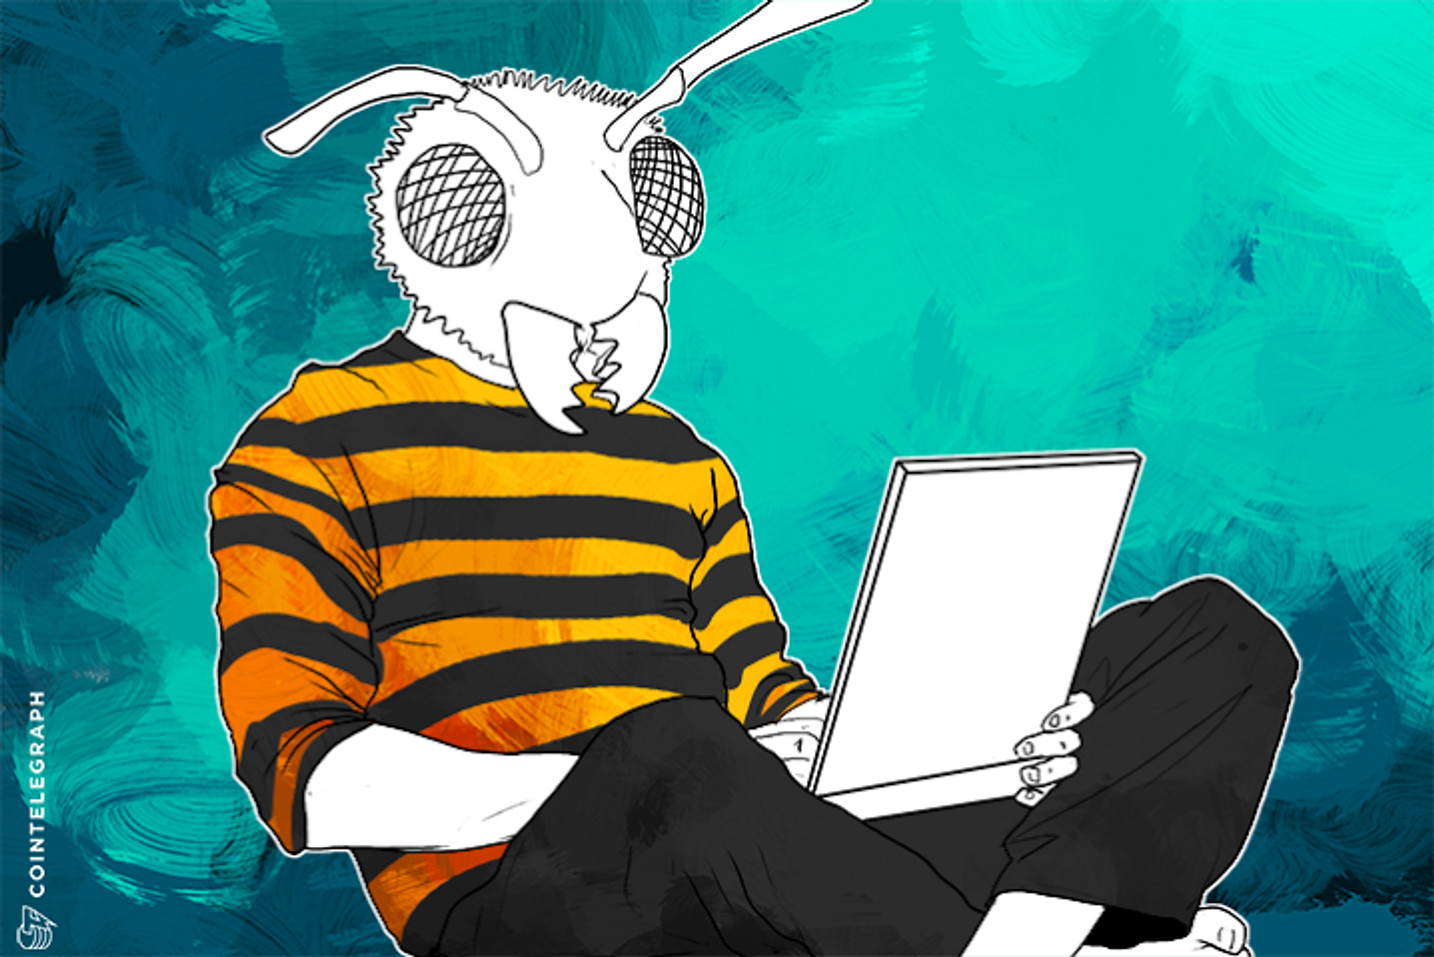 Hornet: High-Speed Protocol for a Fully-Encrypted & Anonymous Internet